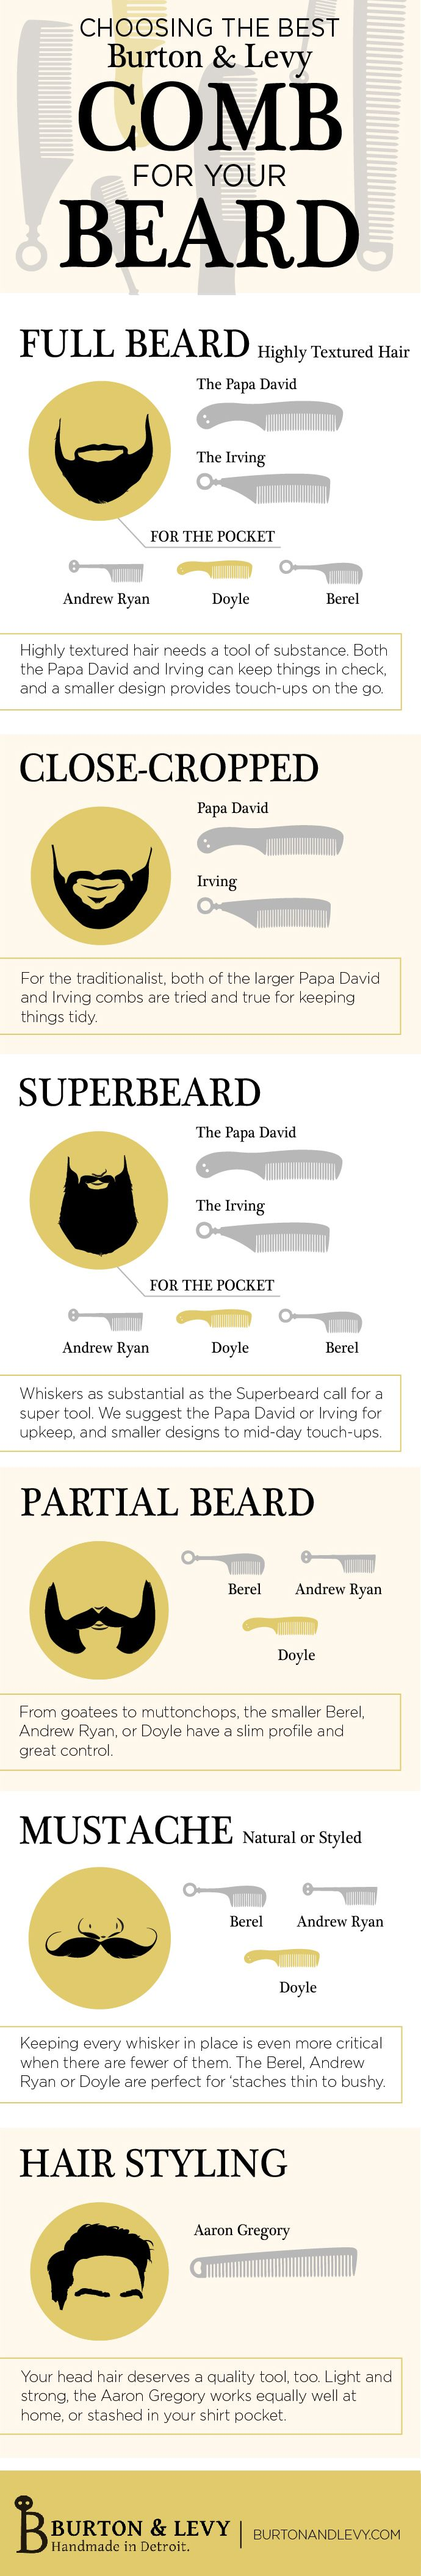 How to choose the best beard comb from Burton & Levy by beard type | Burton & Levy Blog | Heirloom quality beard combs